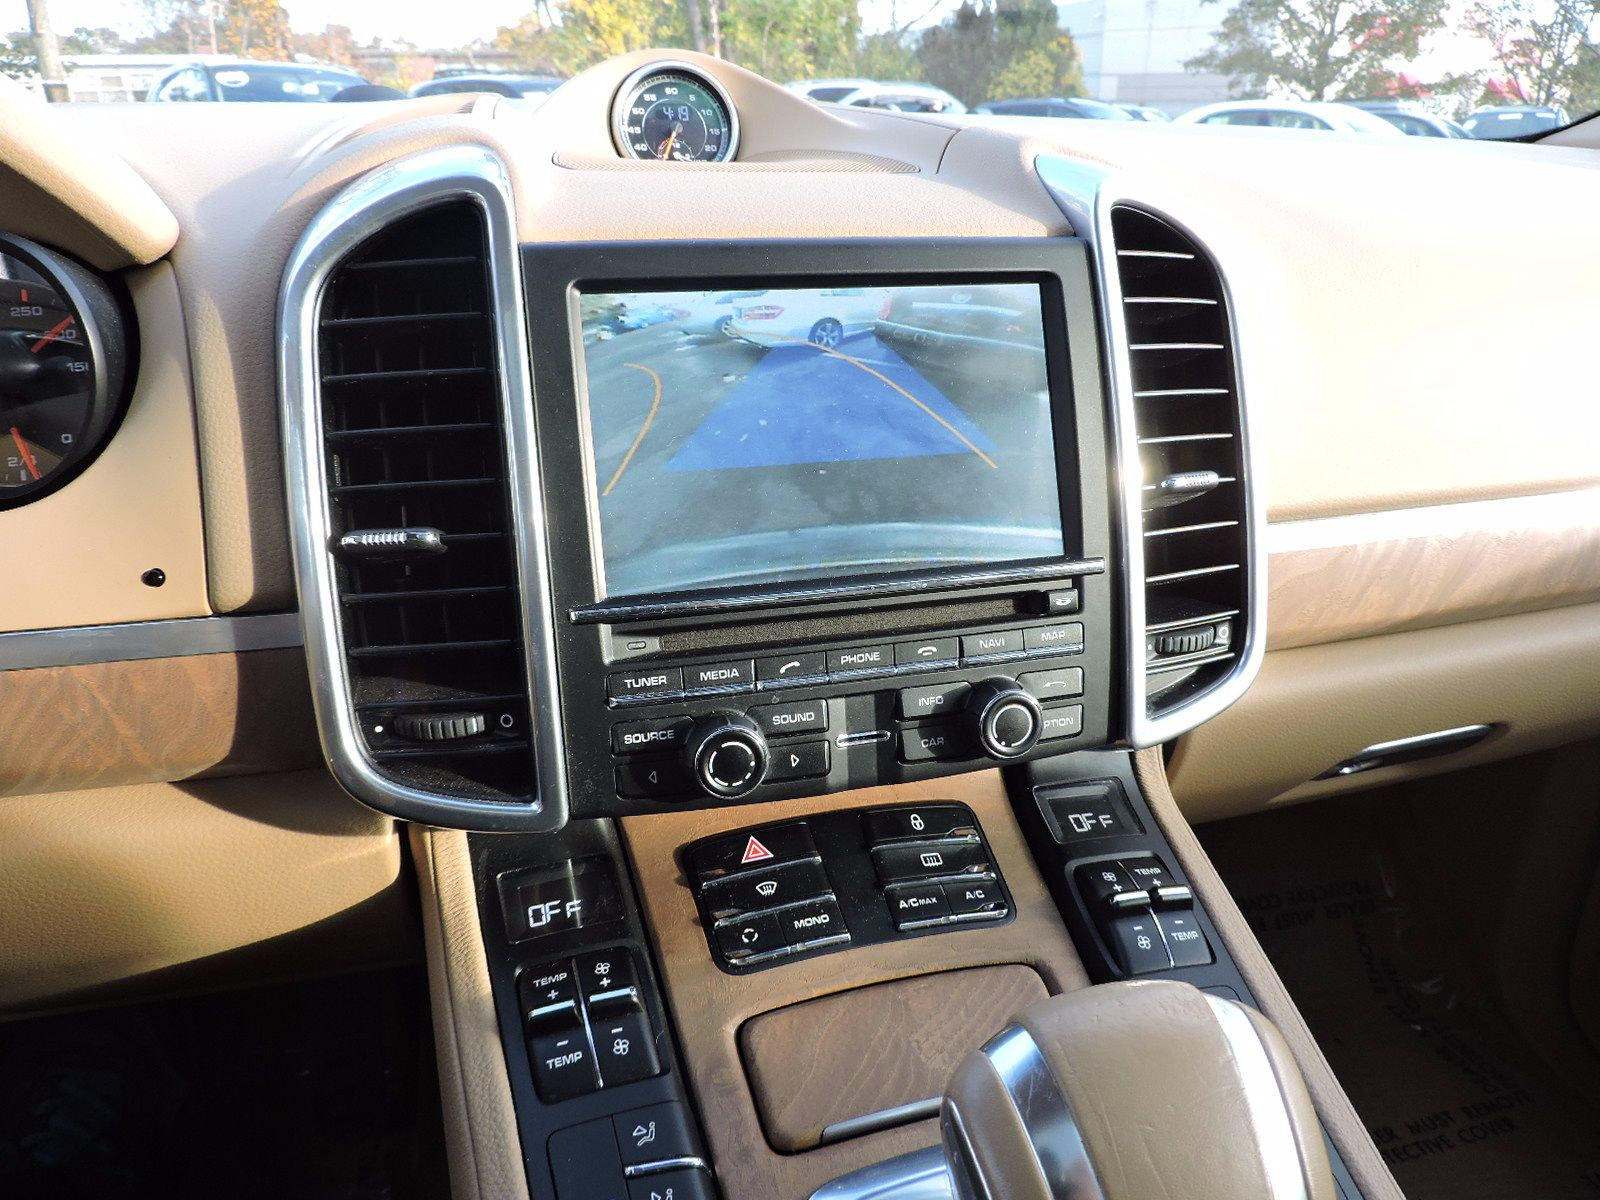 2012 Porsche Cayenne - All Wheel Drive - Navigation